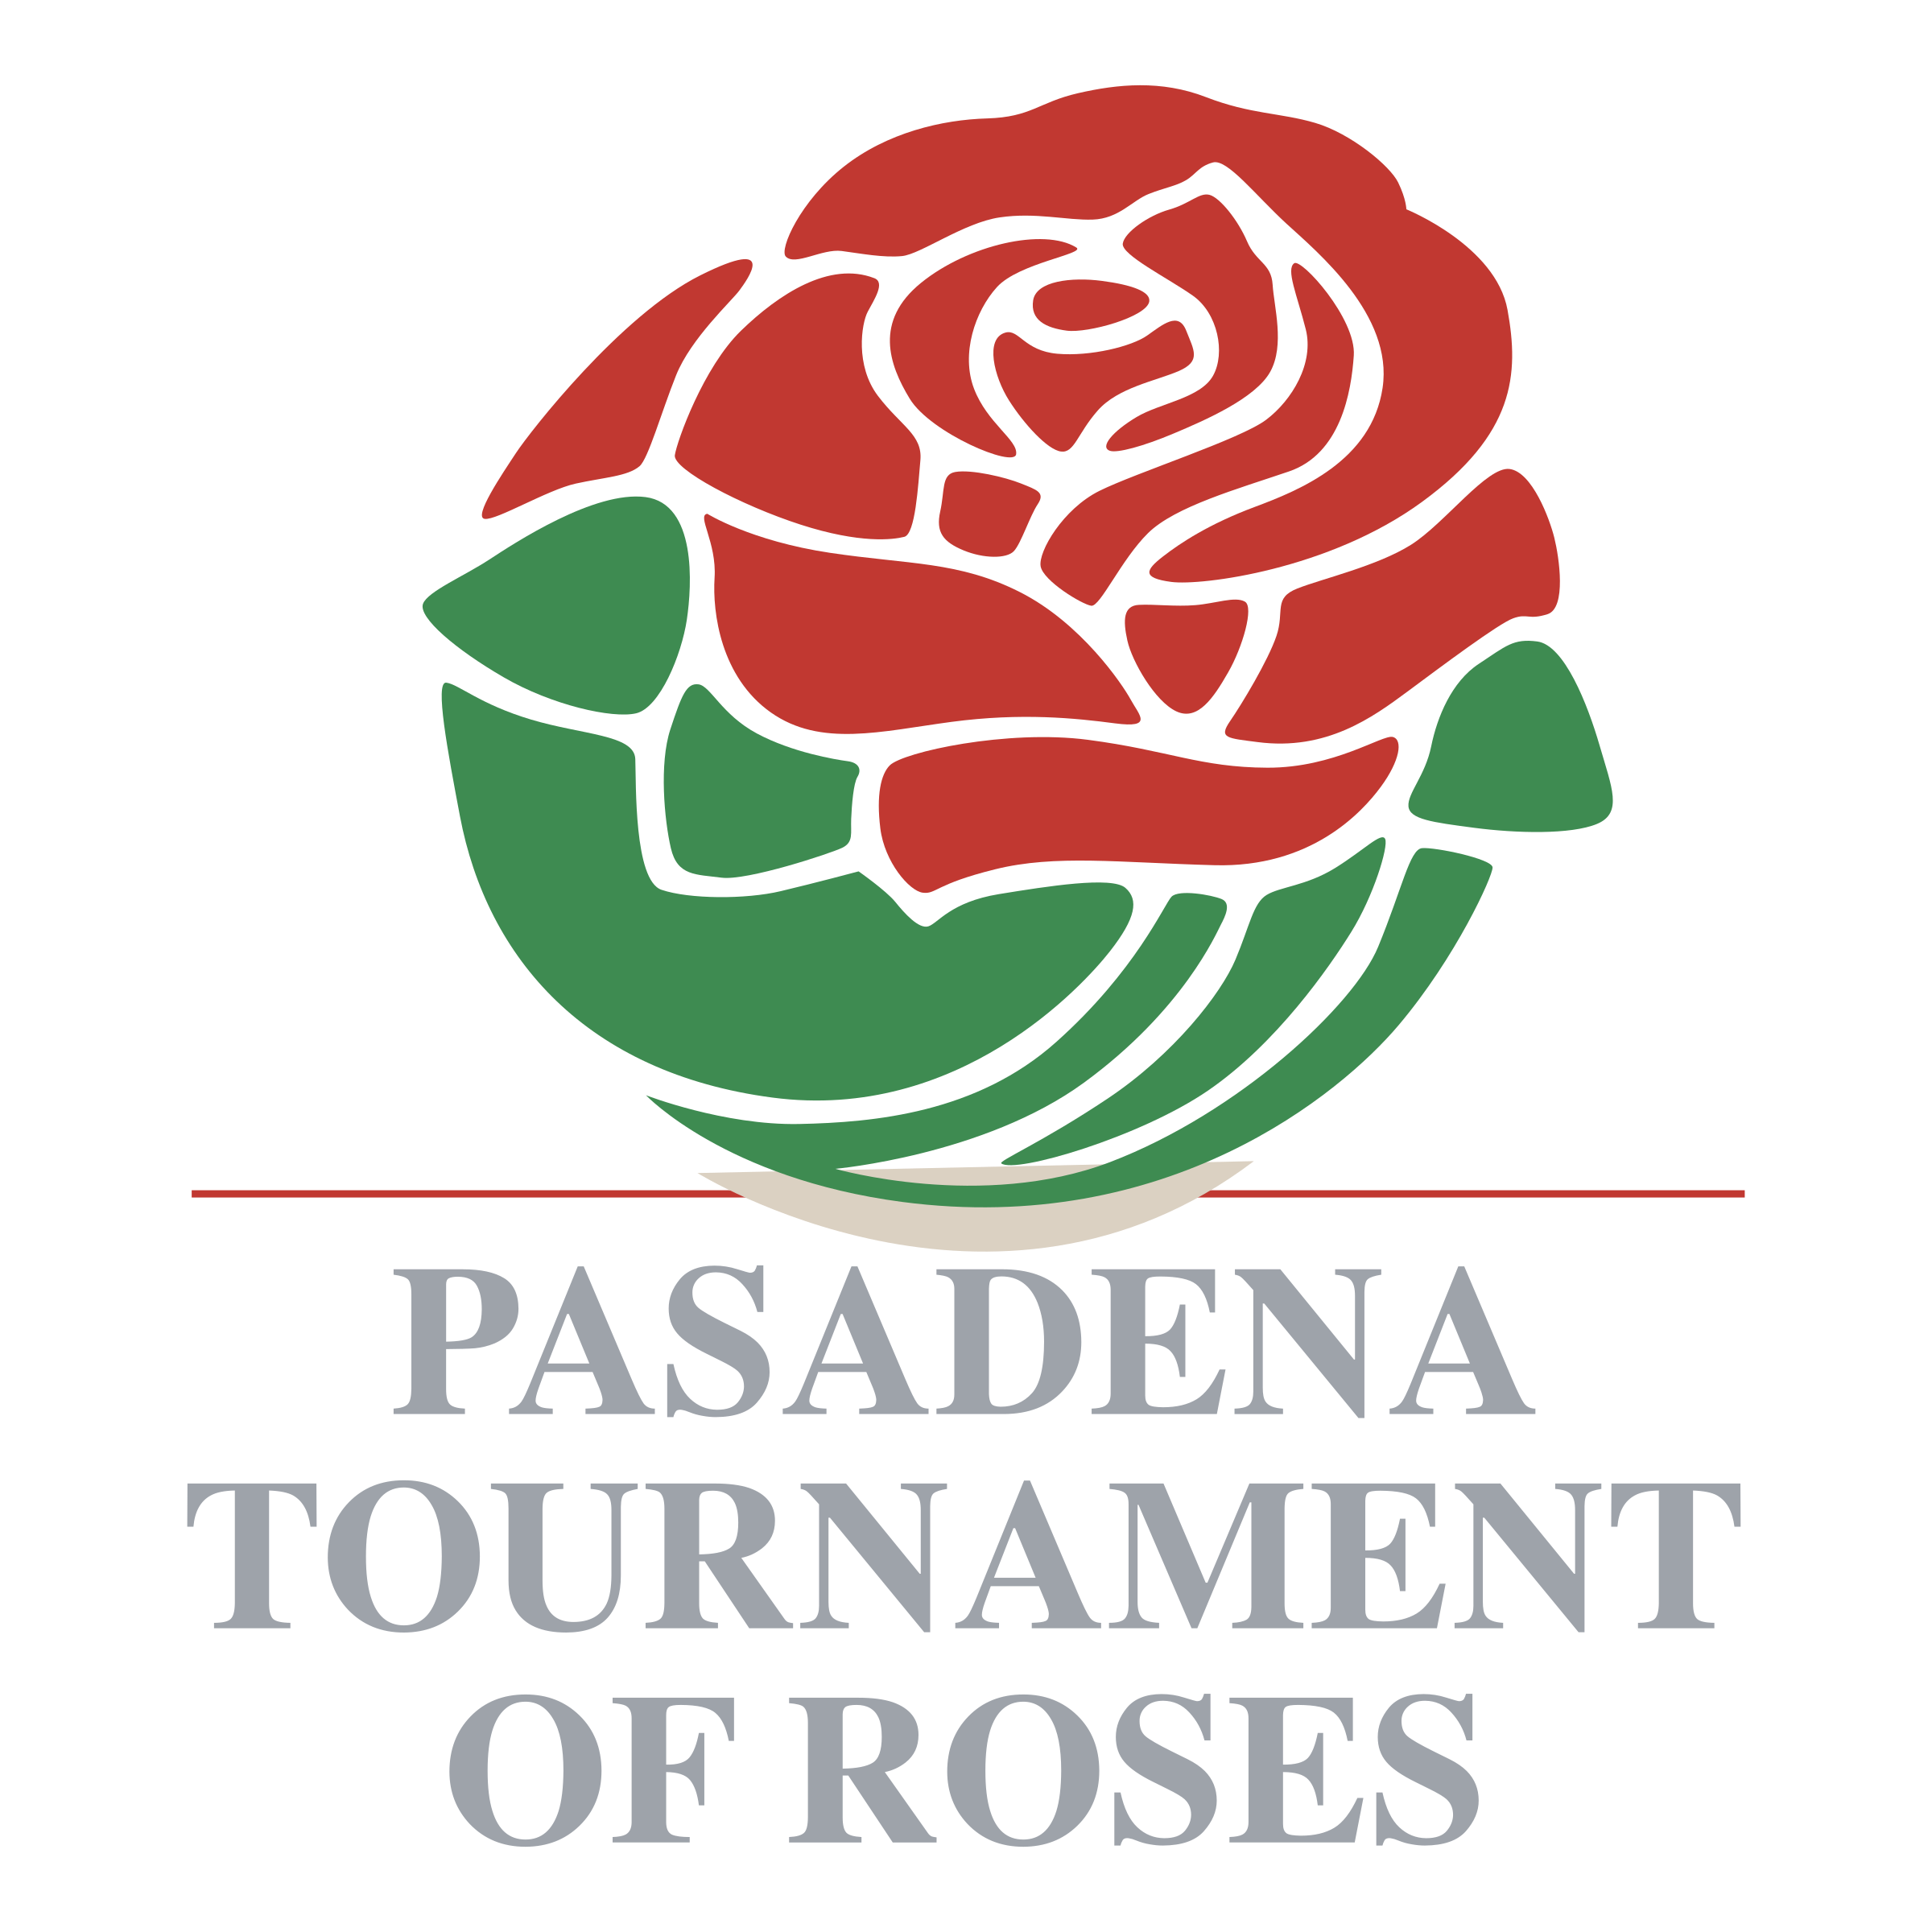 Pasadena Tournament Of Roses Logo Png Transparent